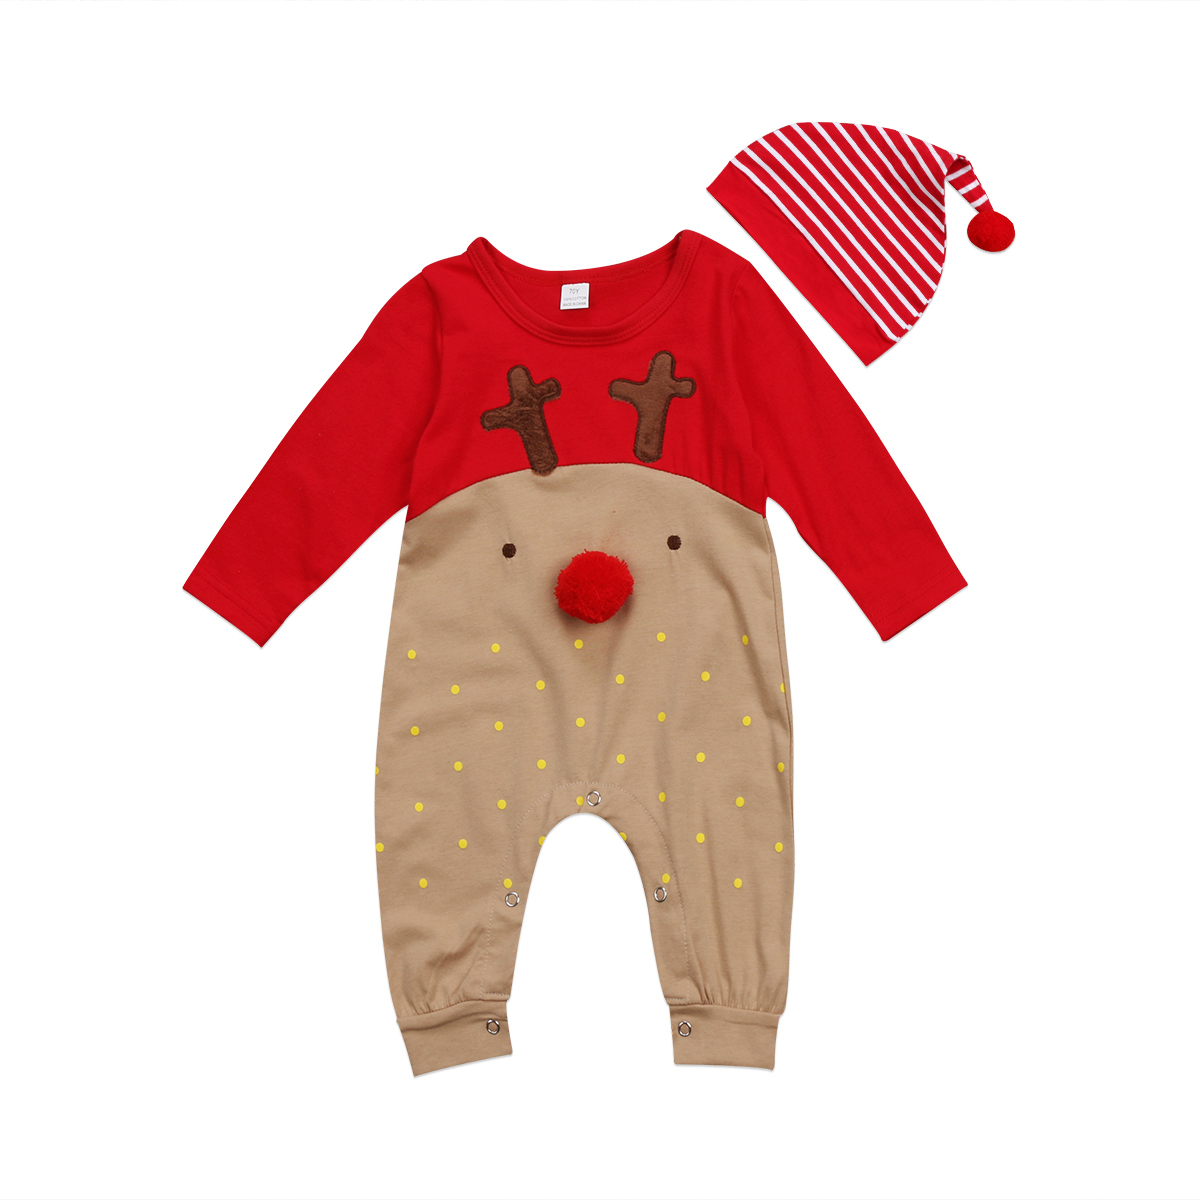 HTB1sQS5abj1gK0jSZFuq6ArHpXaP Emmababy 2Pcs Newborn Baby Boys Girl Christmas Rompers Long Sleeve Deer Romper Jumpsuit Hat Sleepwear Party Costume Baby Clothes